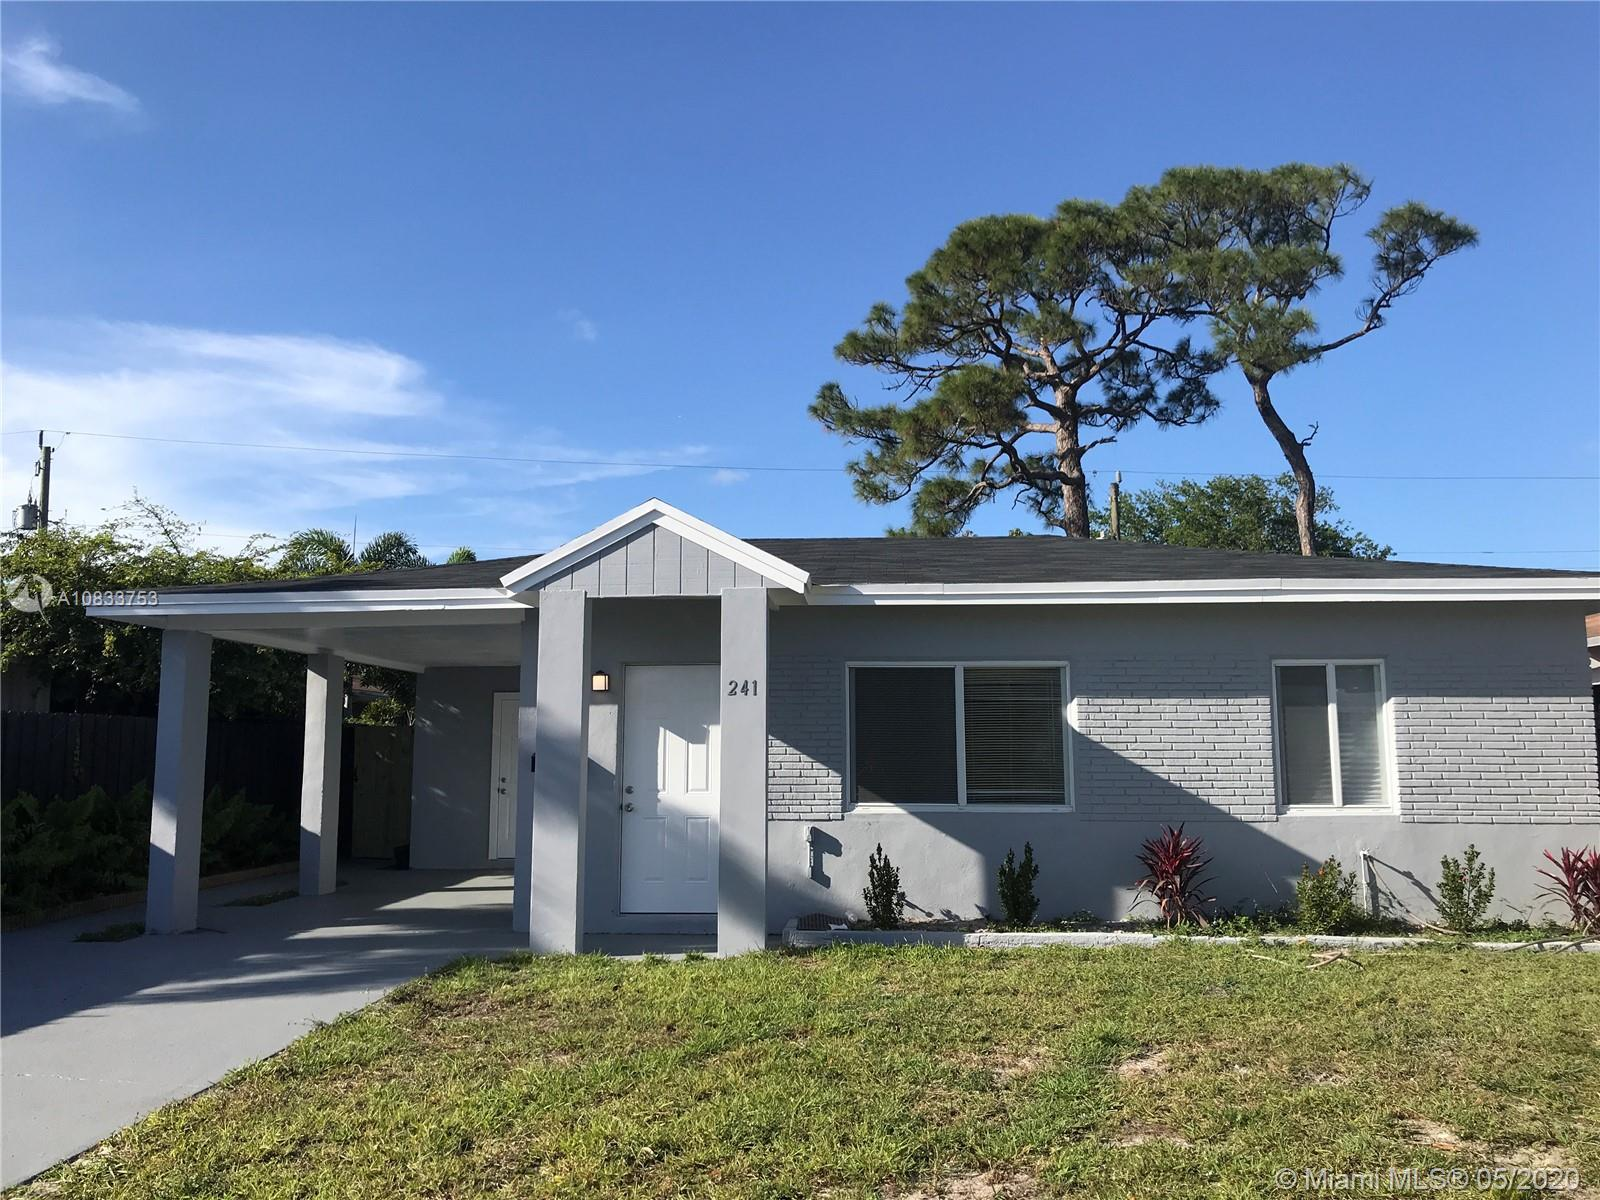 Beautiful Home completely remodeled with modern interior, large living space, new granite kitchen, Huge backyard and much more...It won't last!!!!